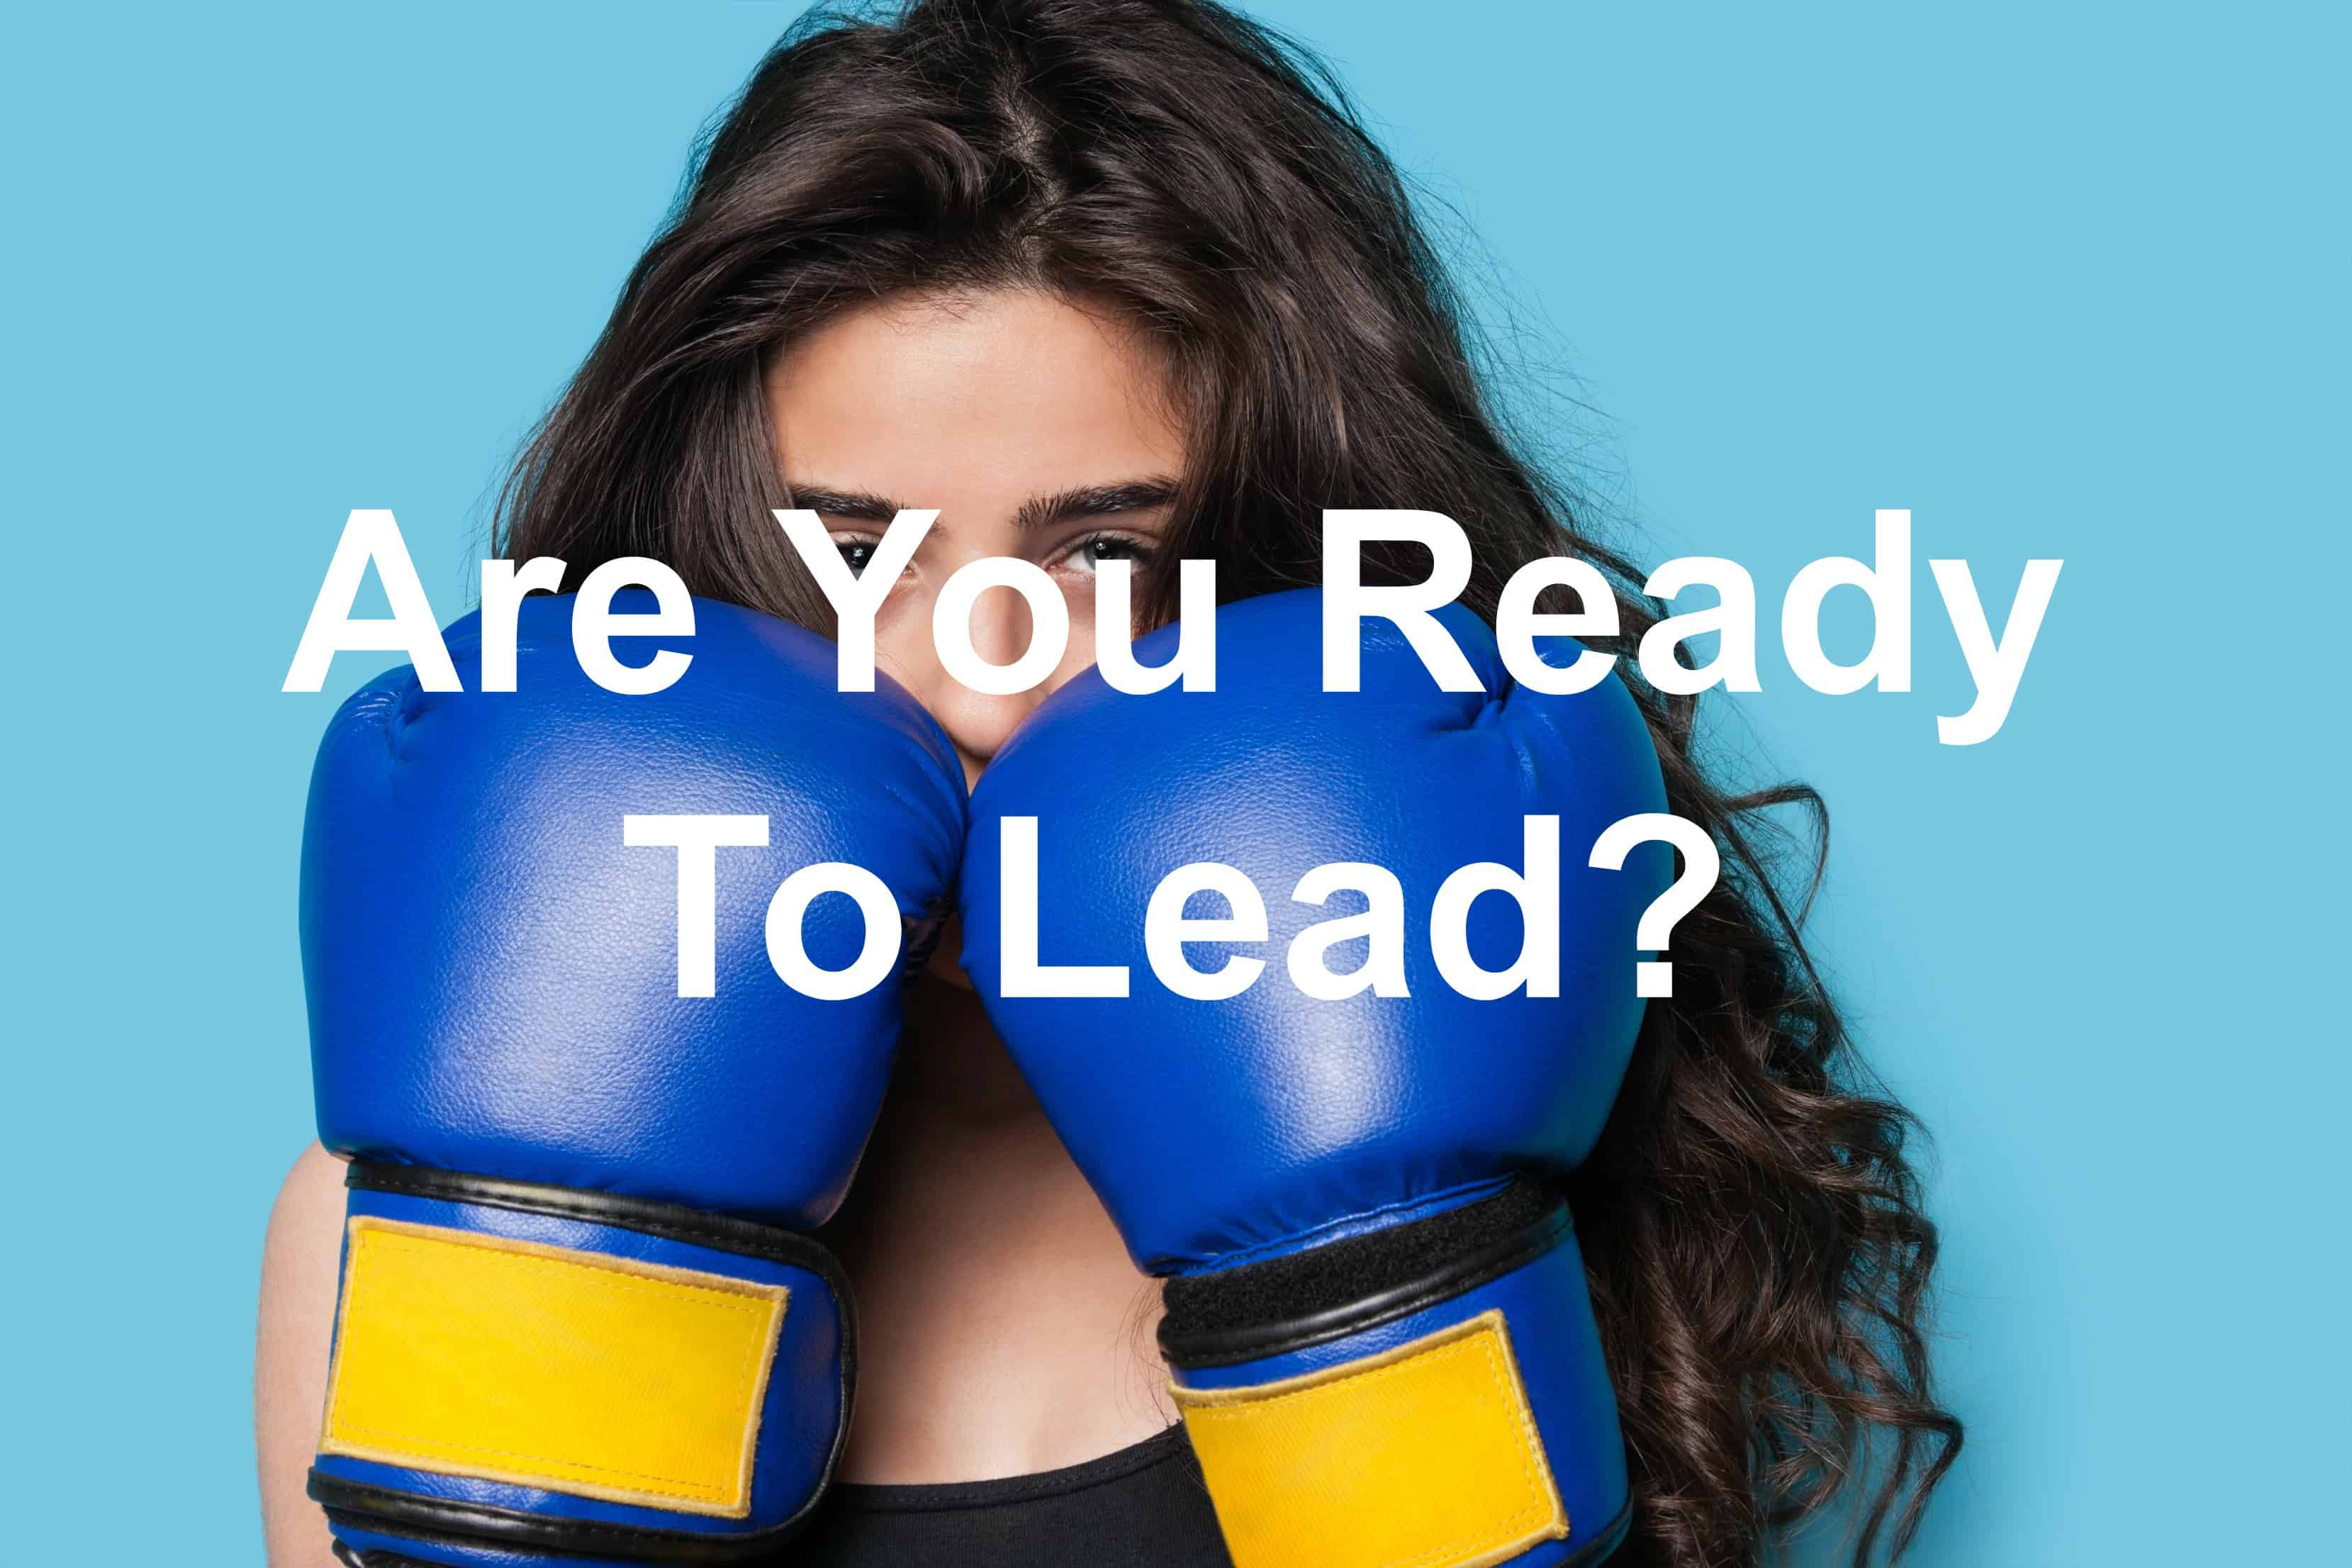 We have to be prepared to lead